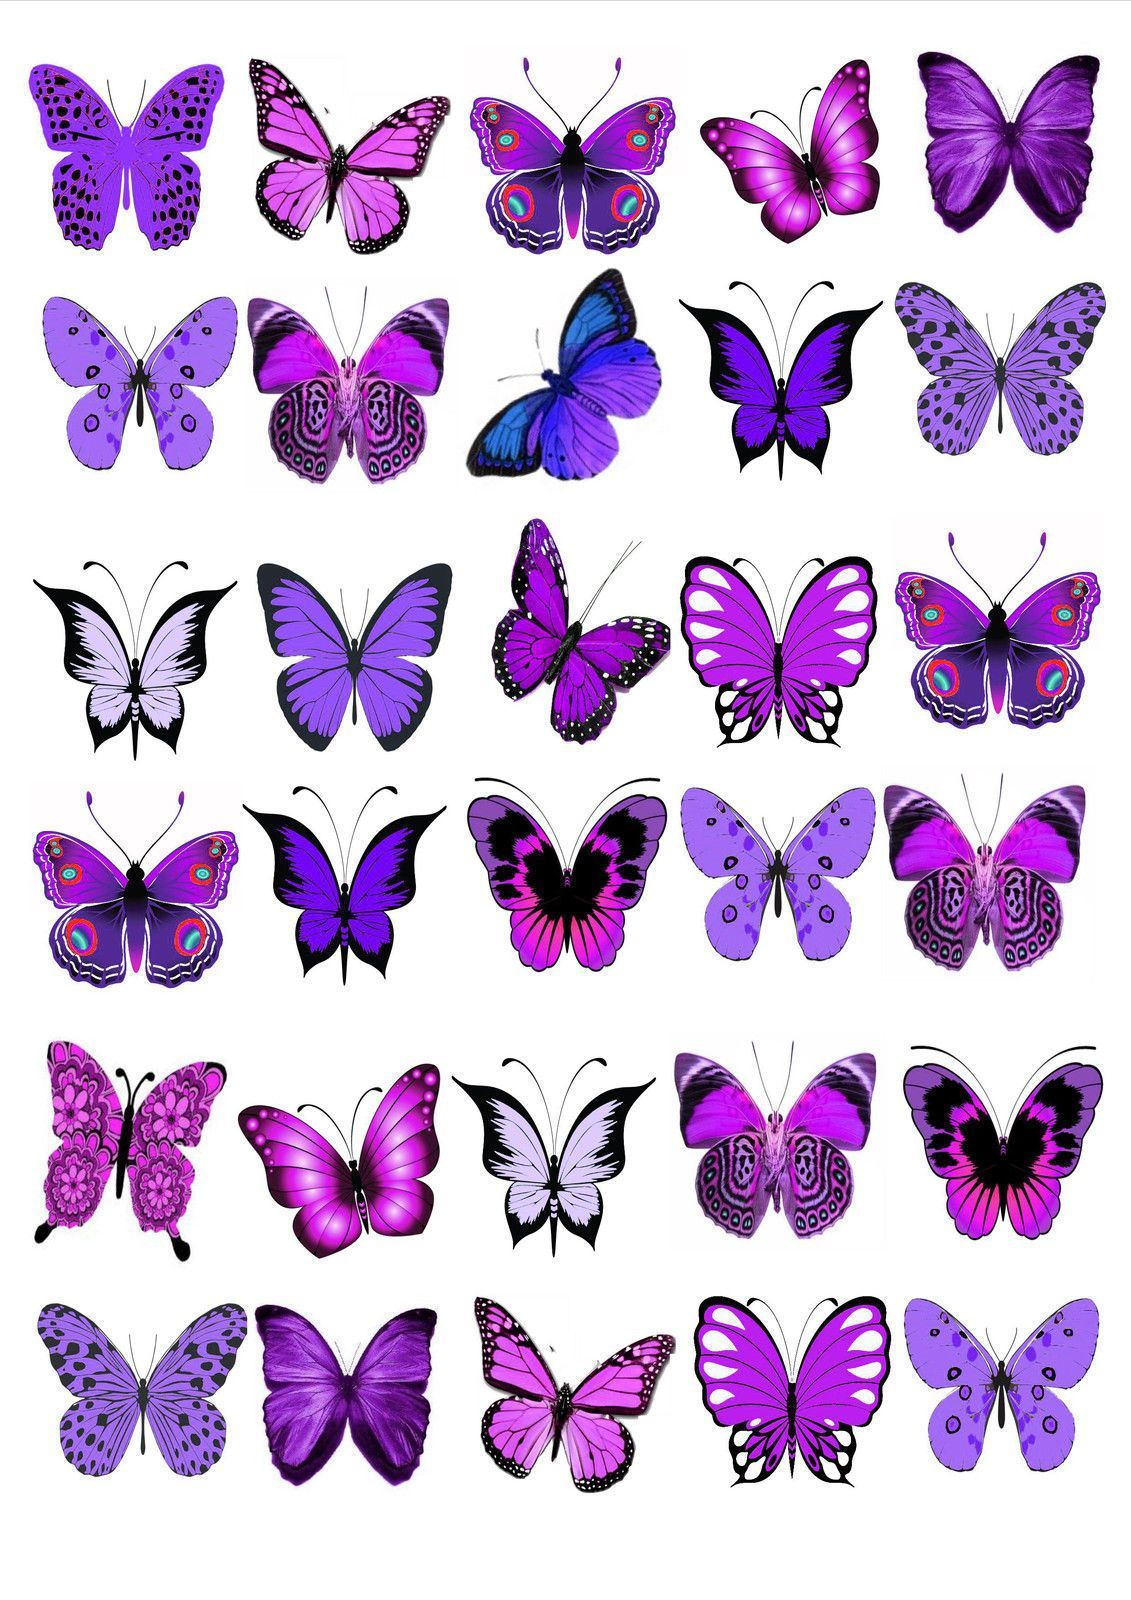 Mariposas Cake Toppers, Oblea 24 Purple Butterfly Cupcake Toppers comestibles Pastel